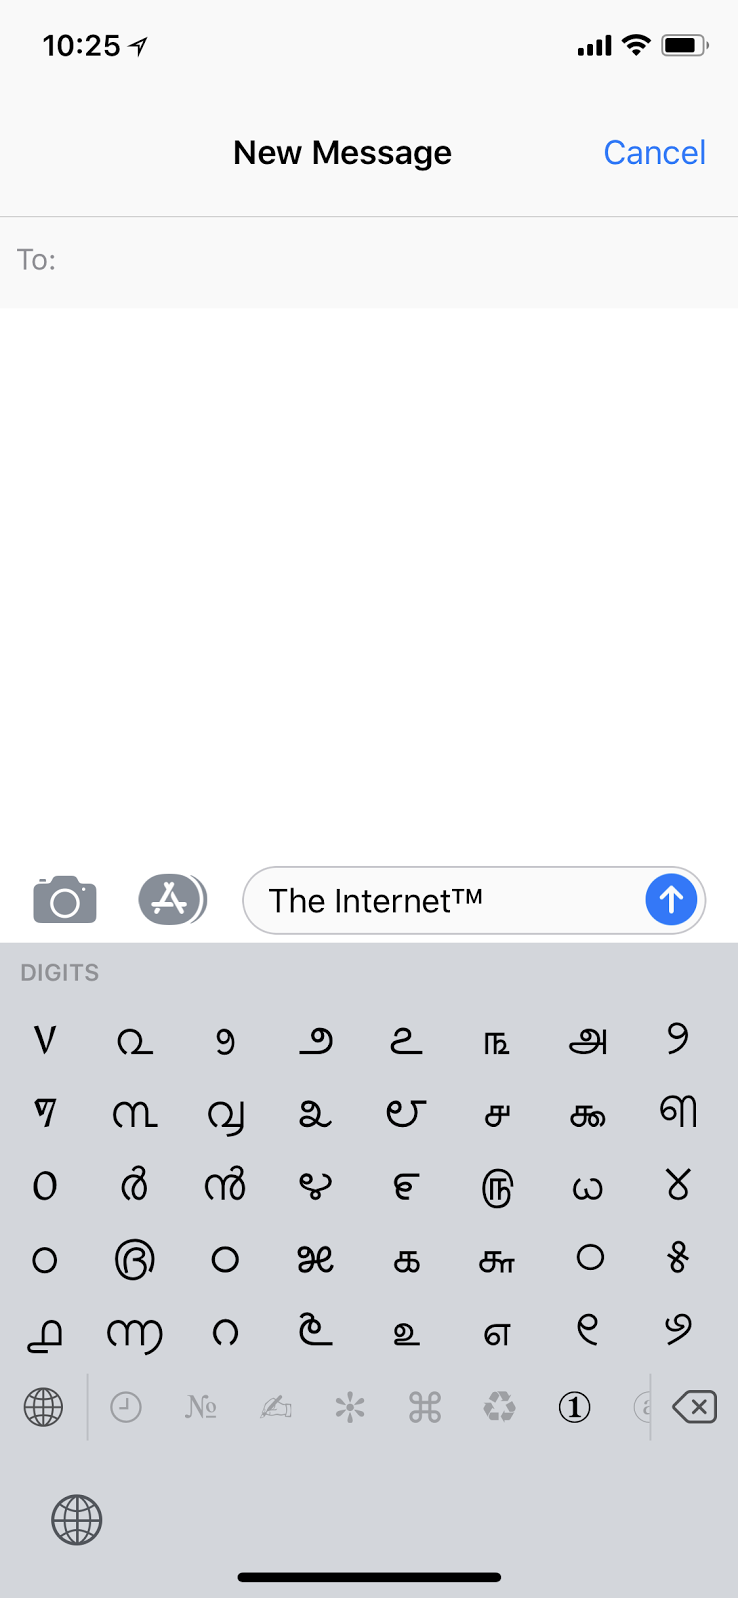 This iOS Keyboard App Will Give You All the Unicode